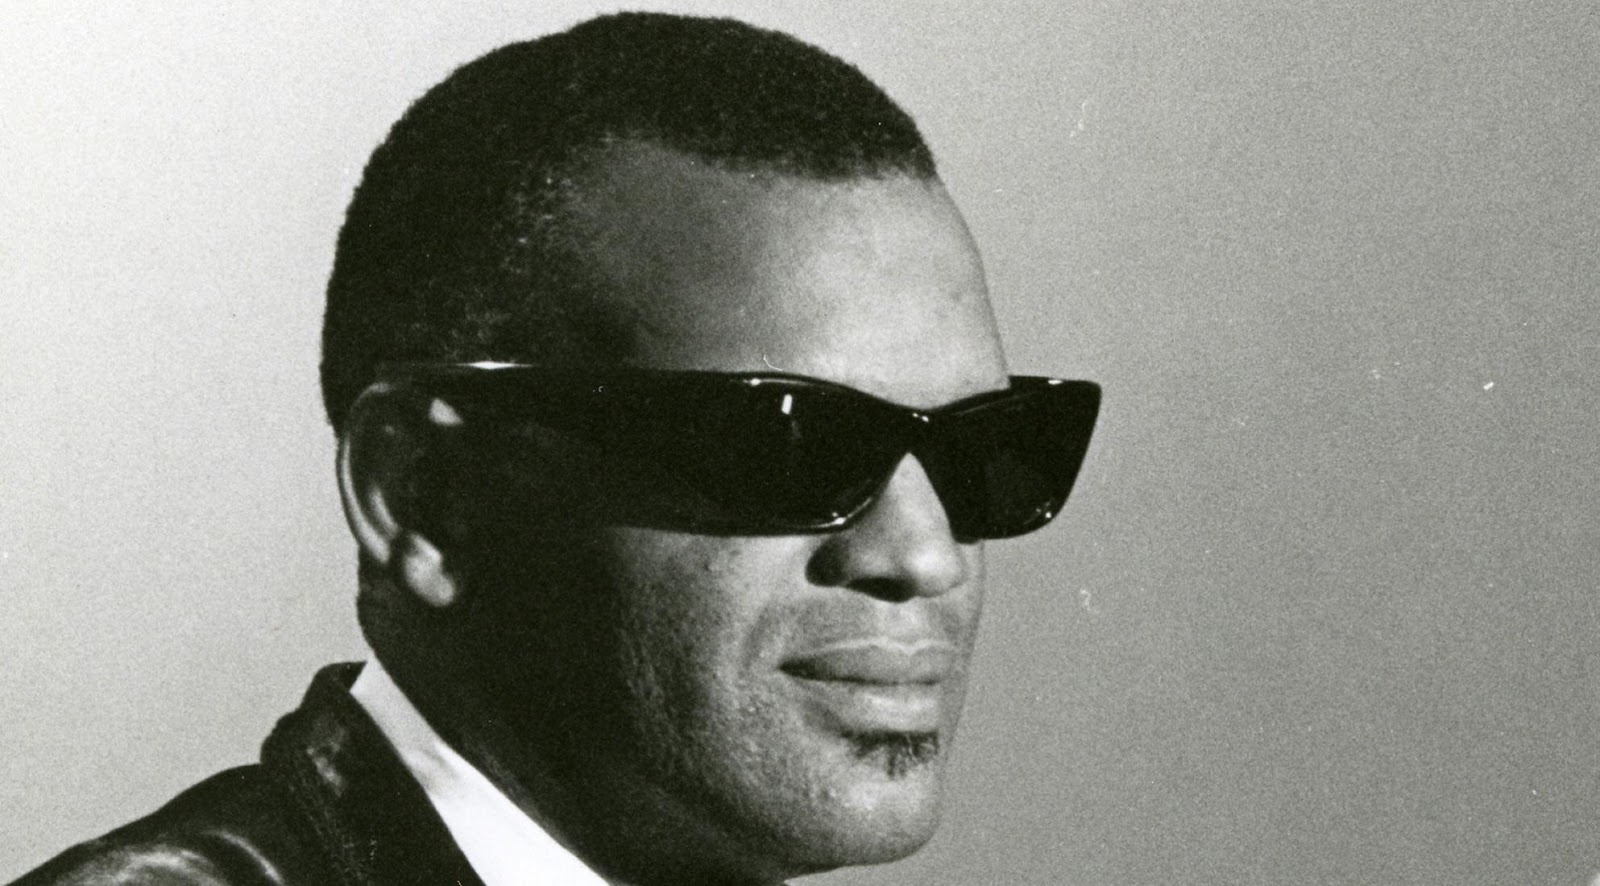 Qvc Masson Ray Charles Video Museum Ray Charles The Raelettes Playbacking